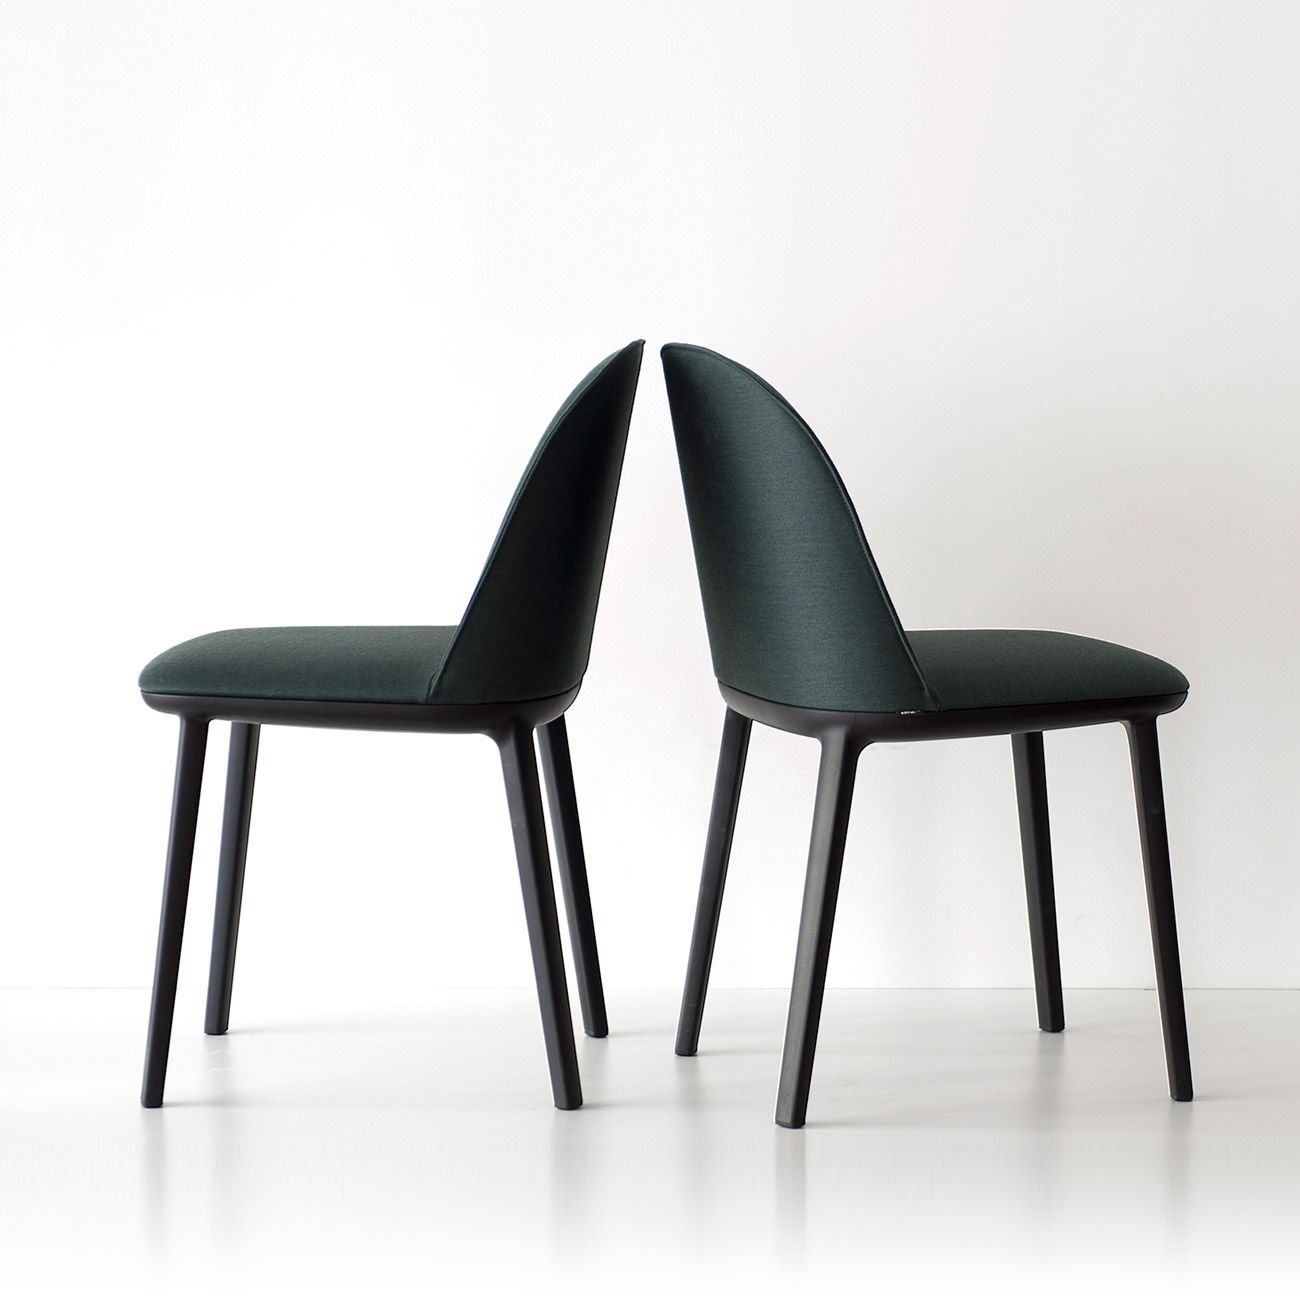 softshell side chair de ronan erwan bouroullec para vitra la softshell side chair tiene un. Black Bedroom Furniture Sets. Home Design Ideas